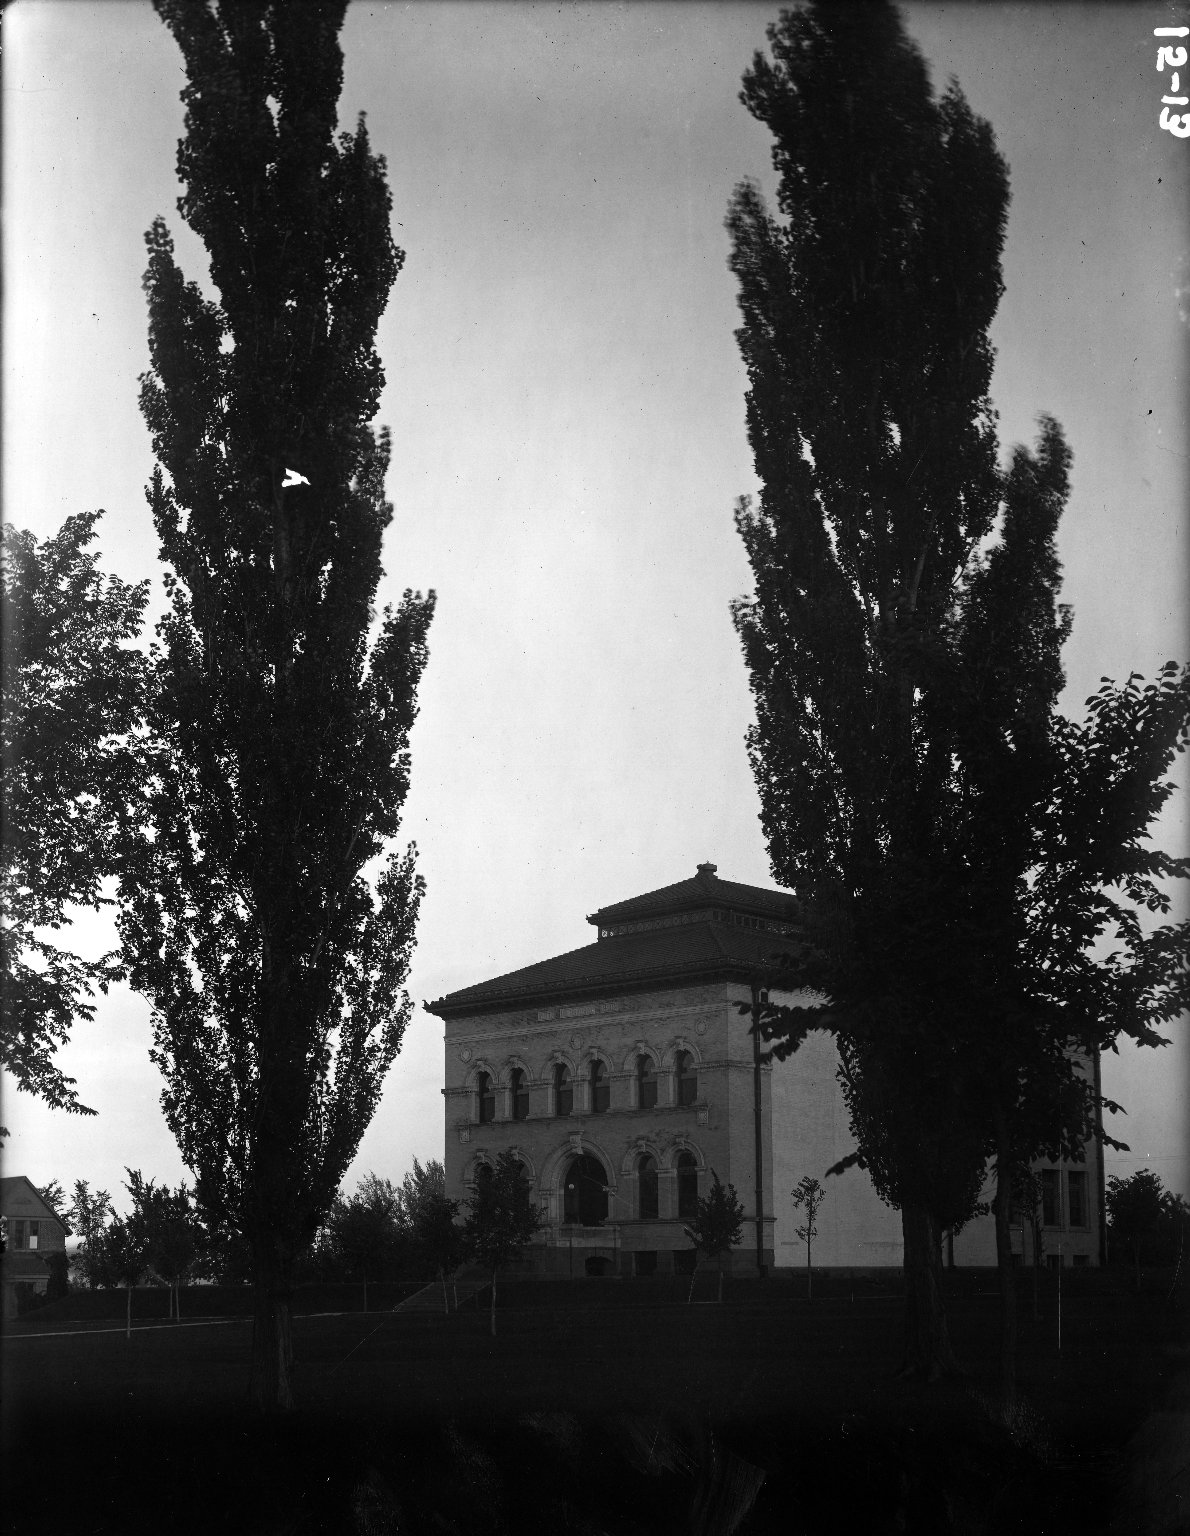 Library and Poplars